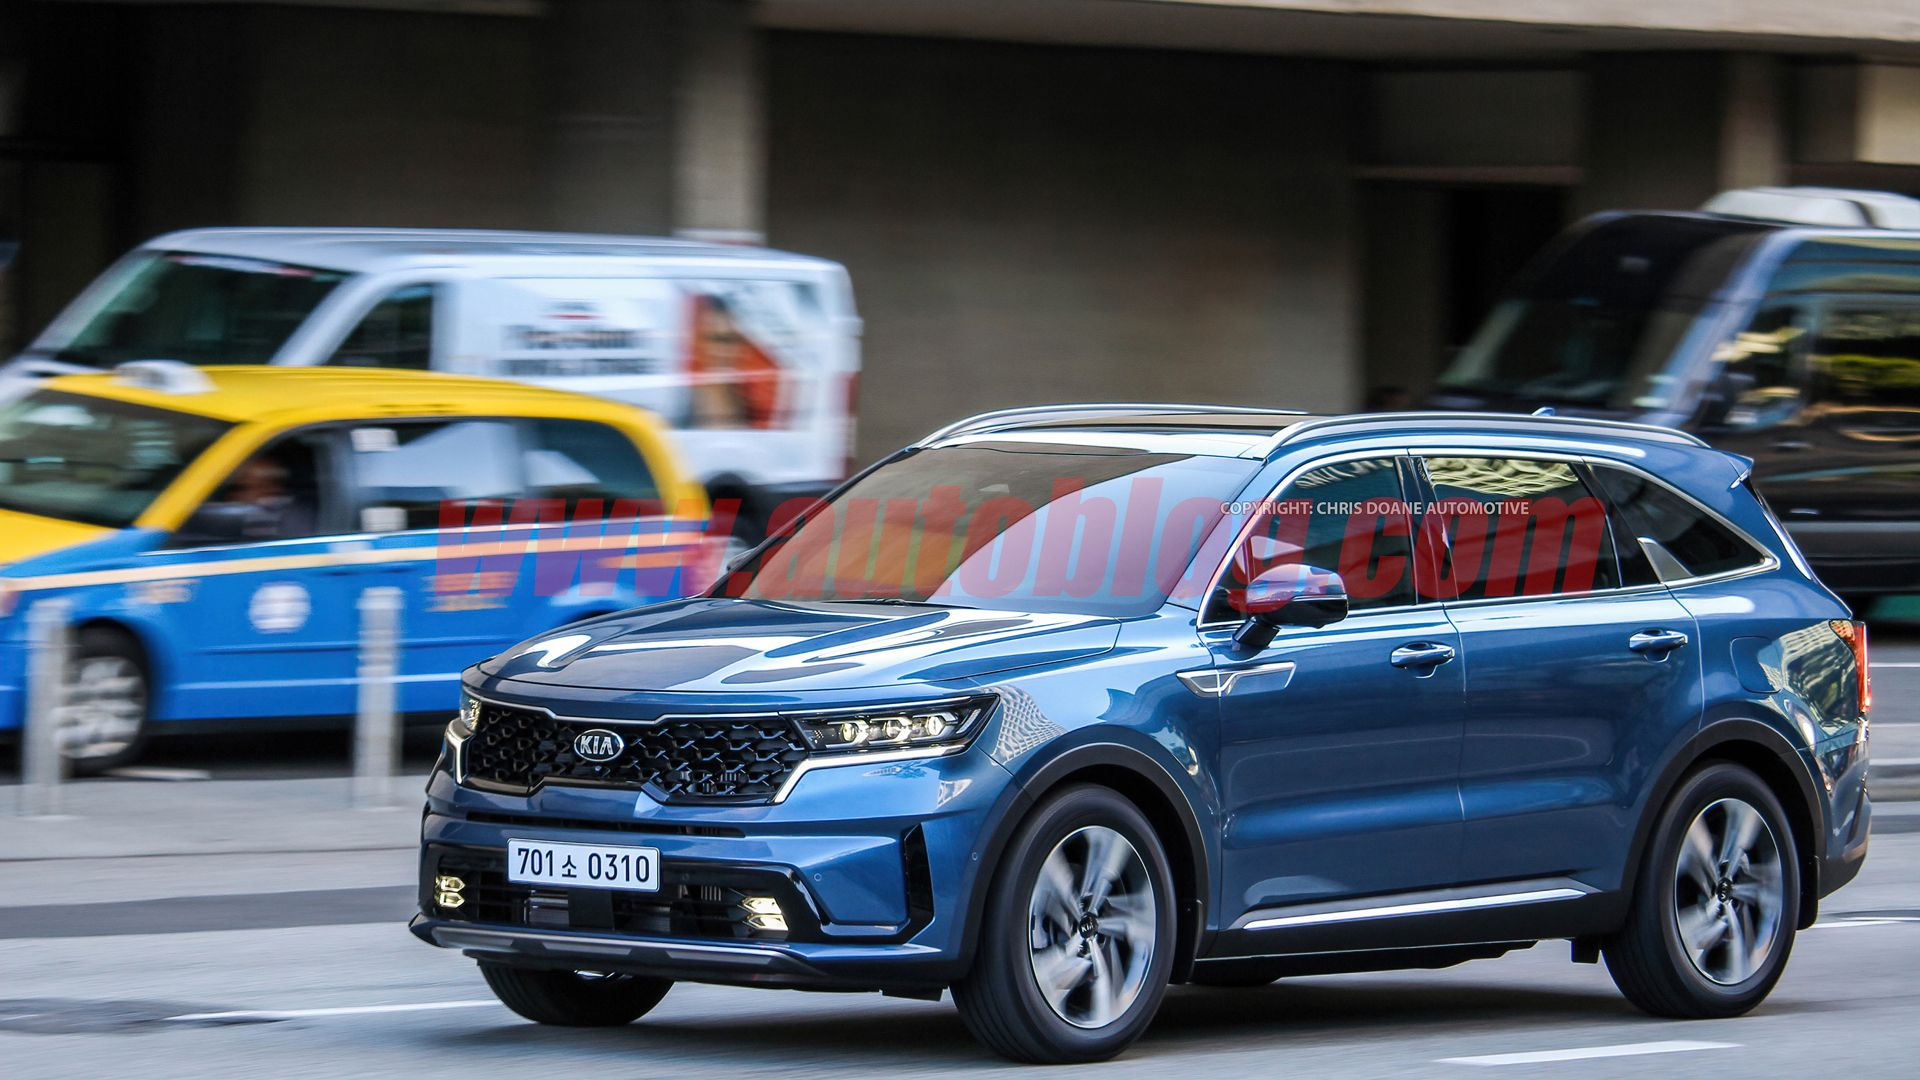 2021 Kia Sorento Caught Ahead Of Its Debut During A Commercial